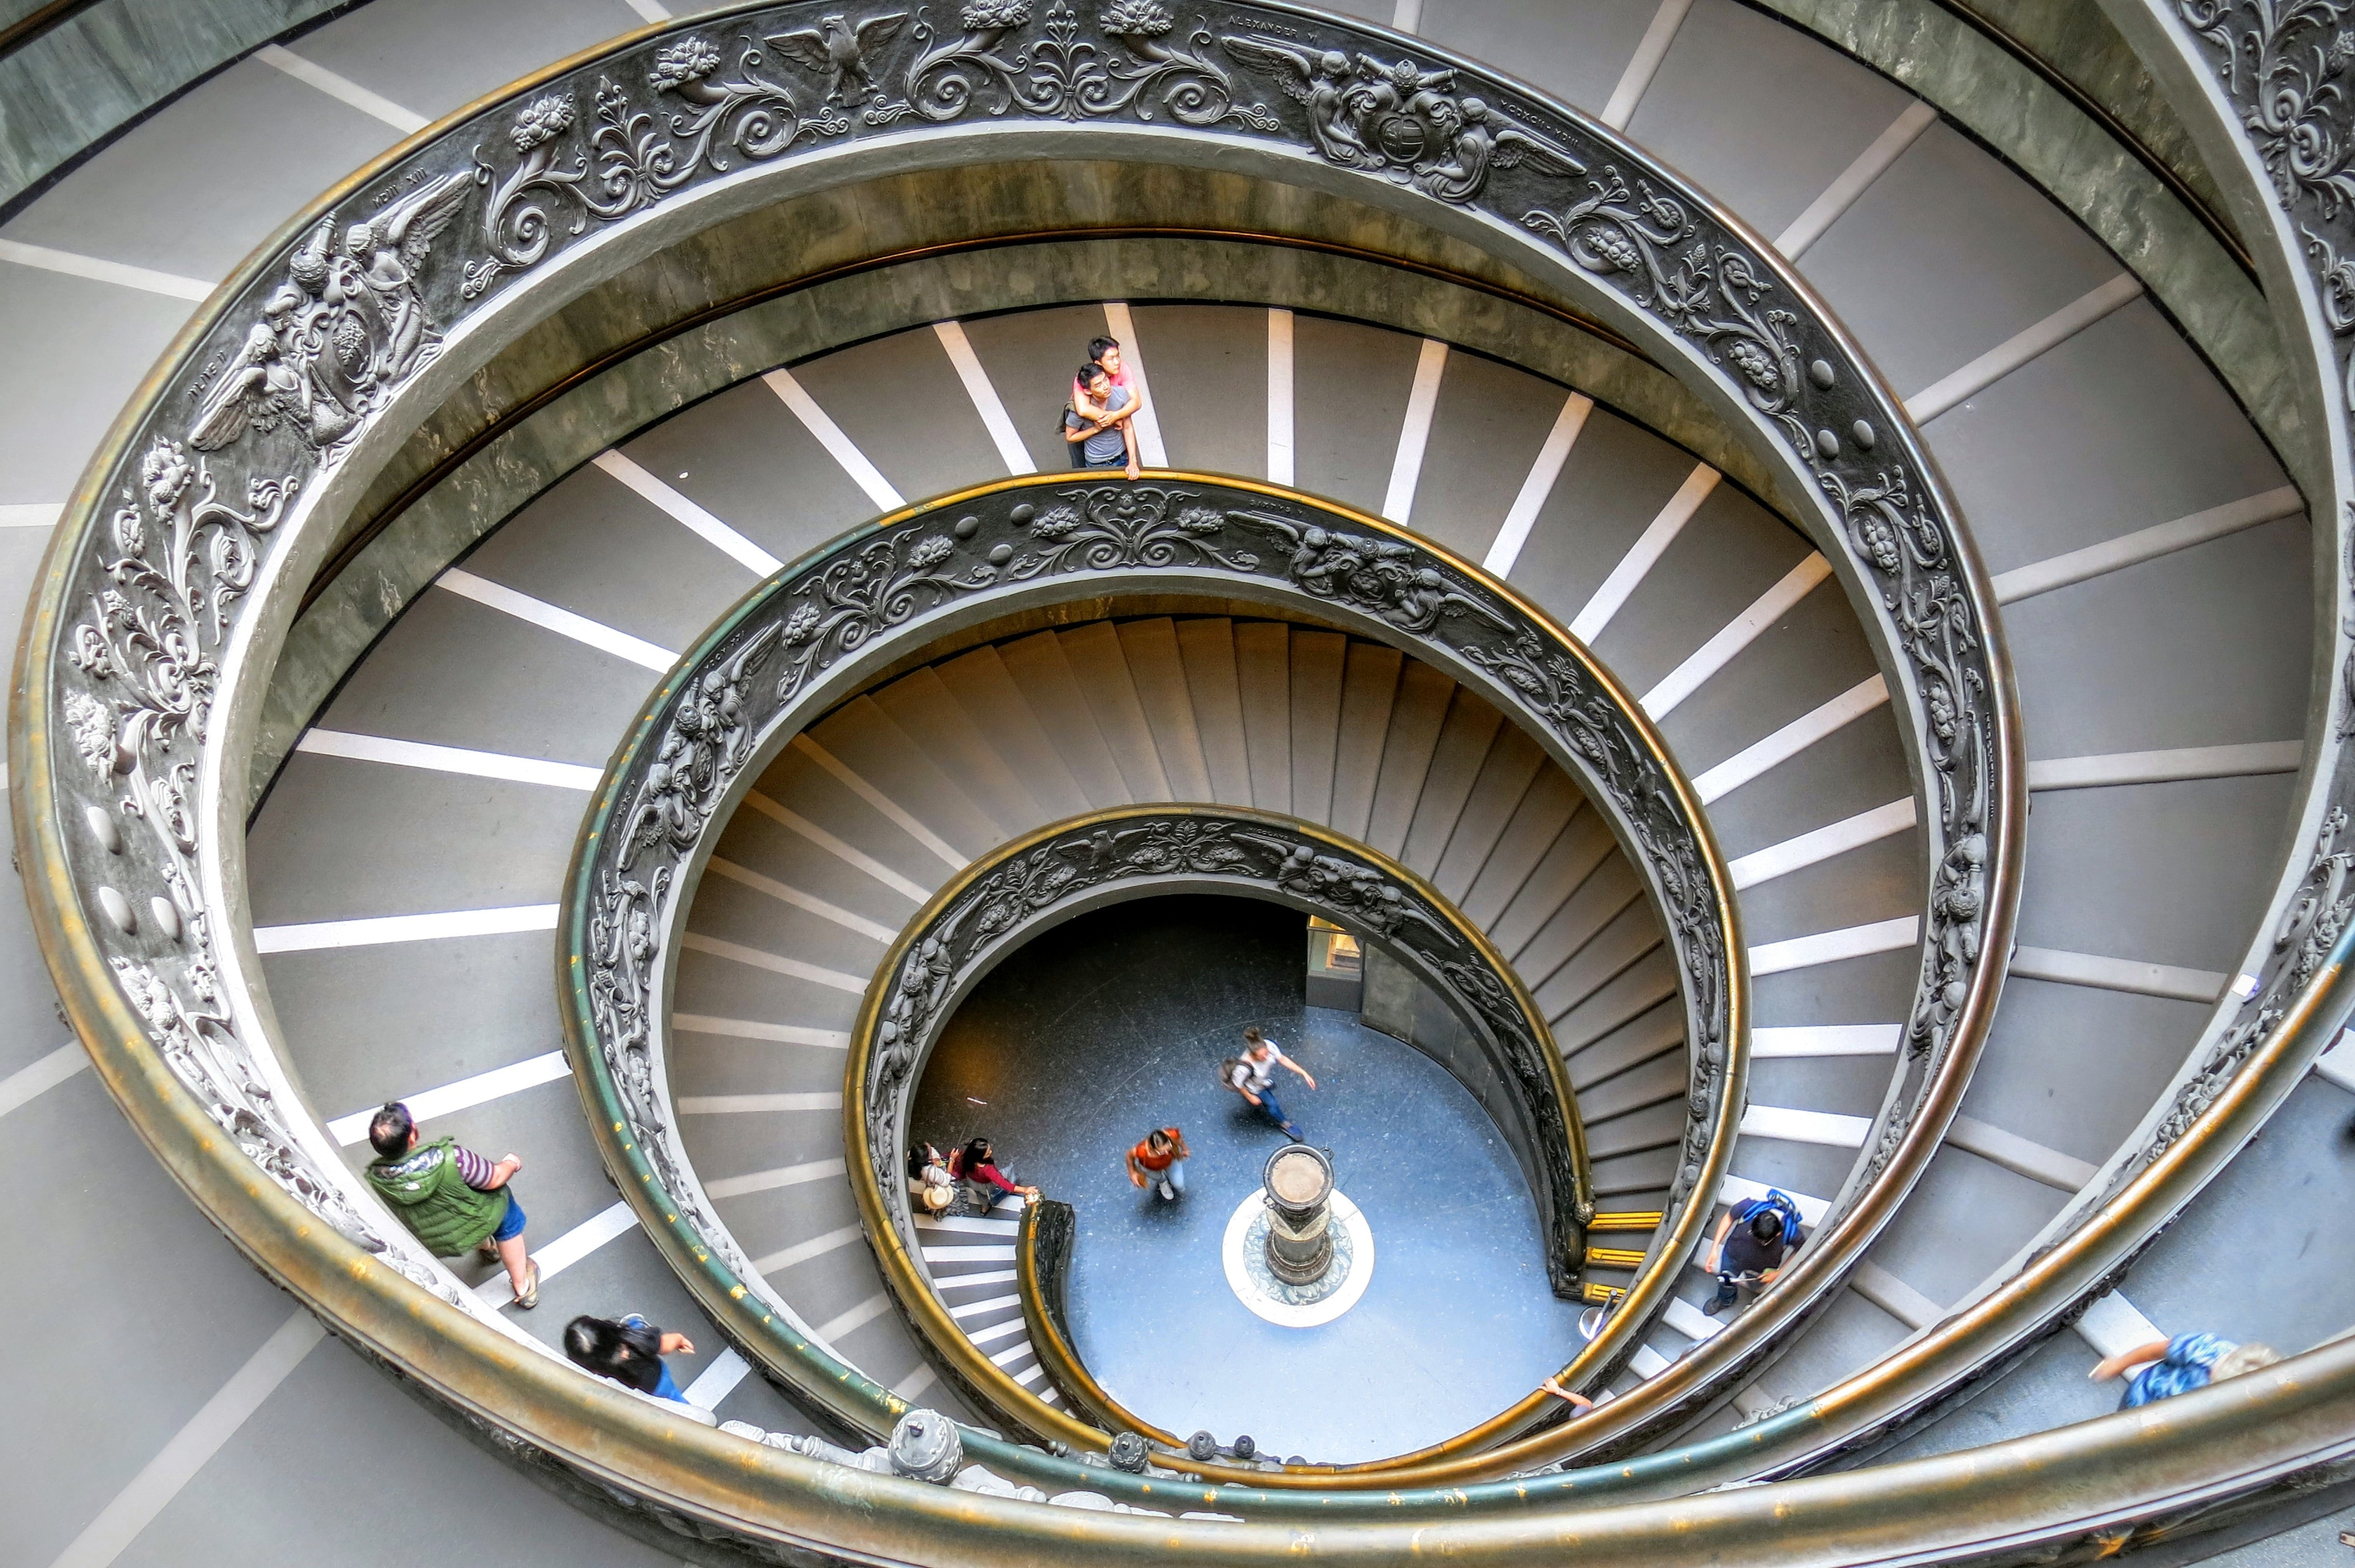 Looking down a massive spiral staircase while people climb up in the Vatican Museums